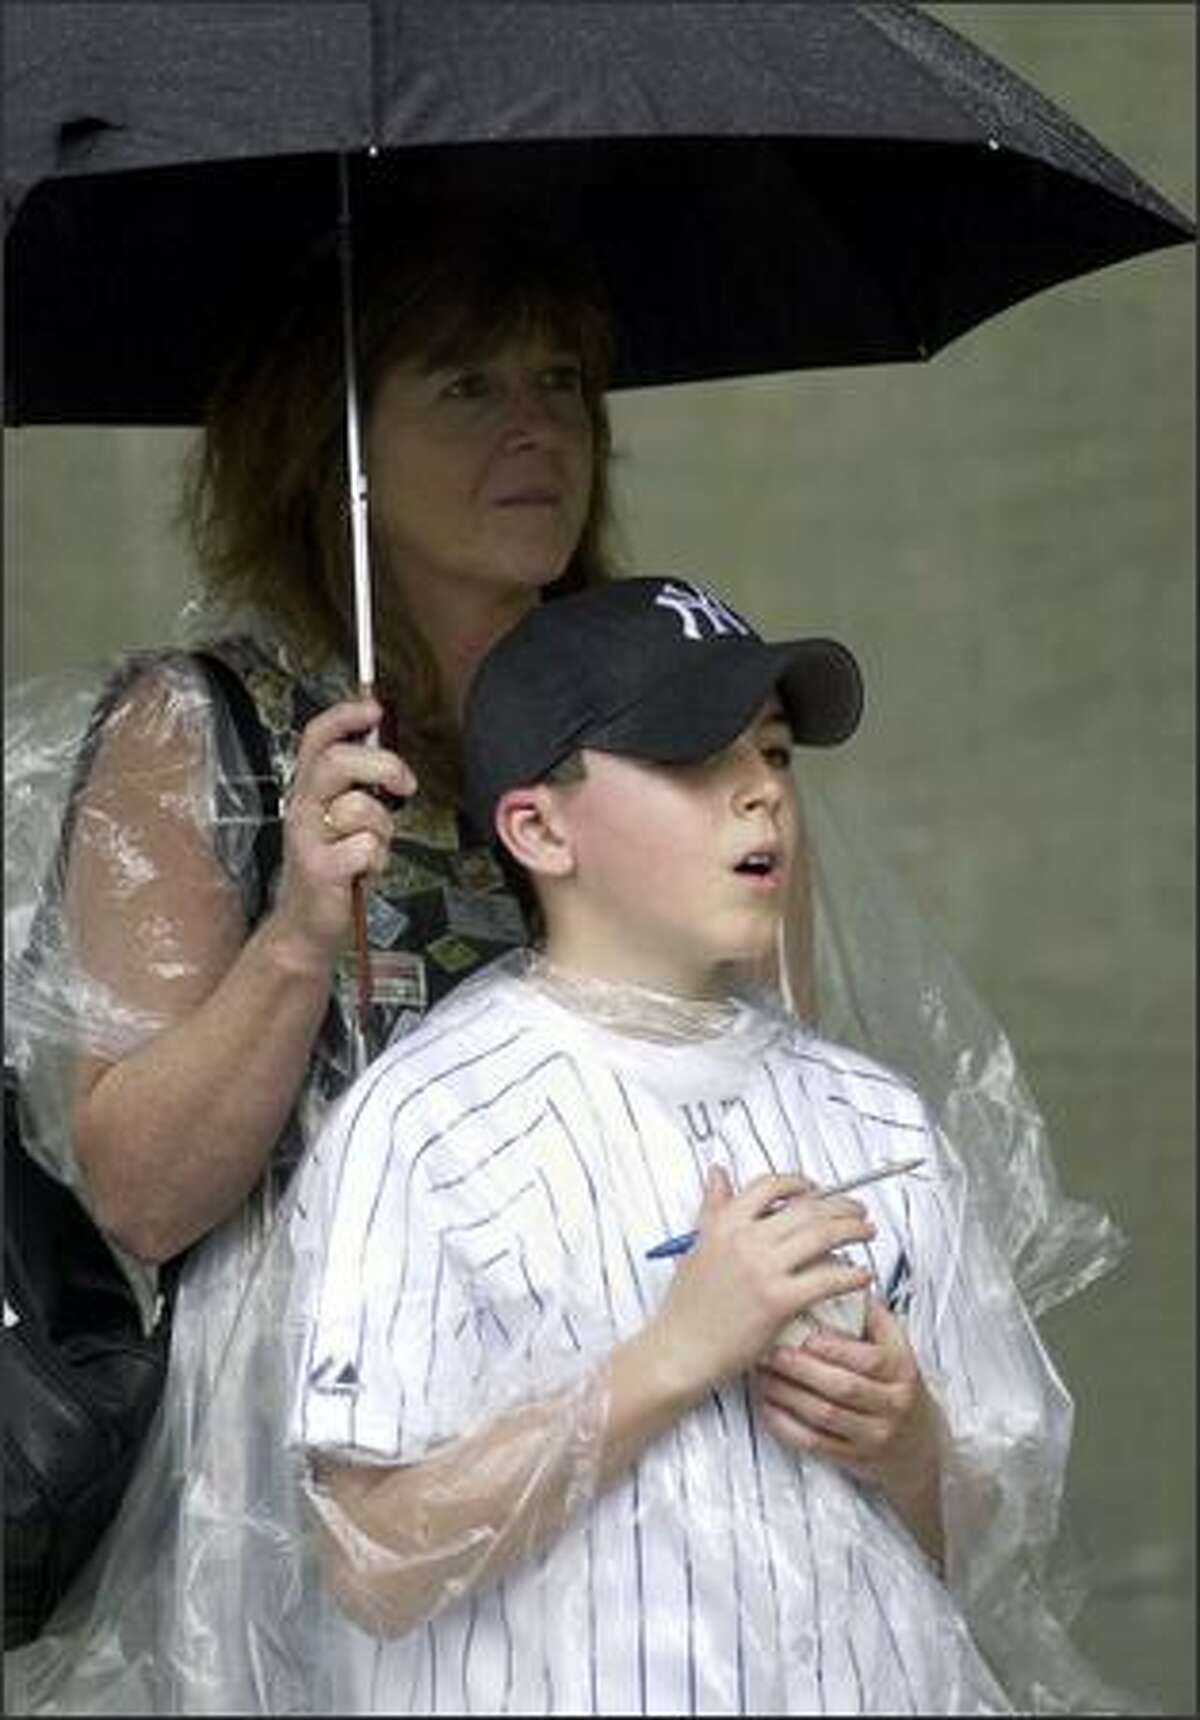 Peter Anspach, 11, of Wilton, Conn., stands with his mother Rita outside Progress Engery Park in St. Petersburg, Fla., with hopes of getting some autographs after a spring training game between the New York Yankees and the Tampa Bay Devil Rays was rained out. (AP Photo/Tom E. Puskar)